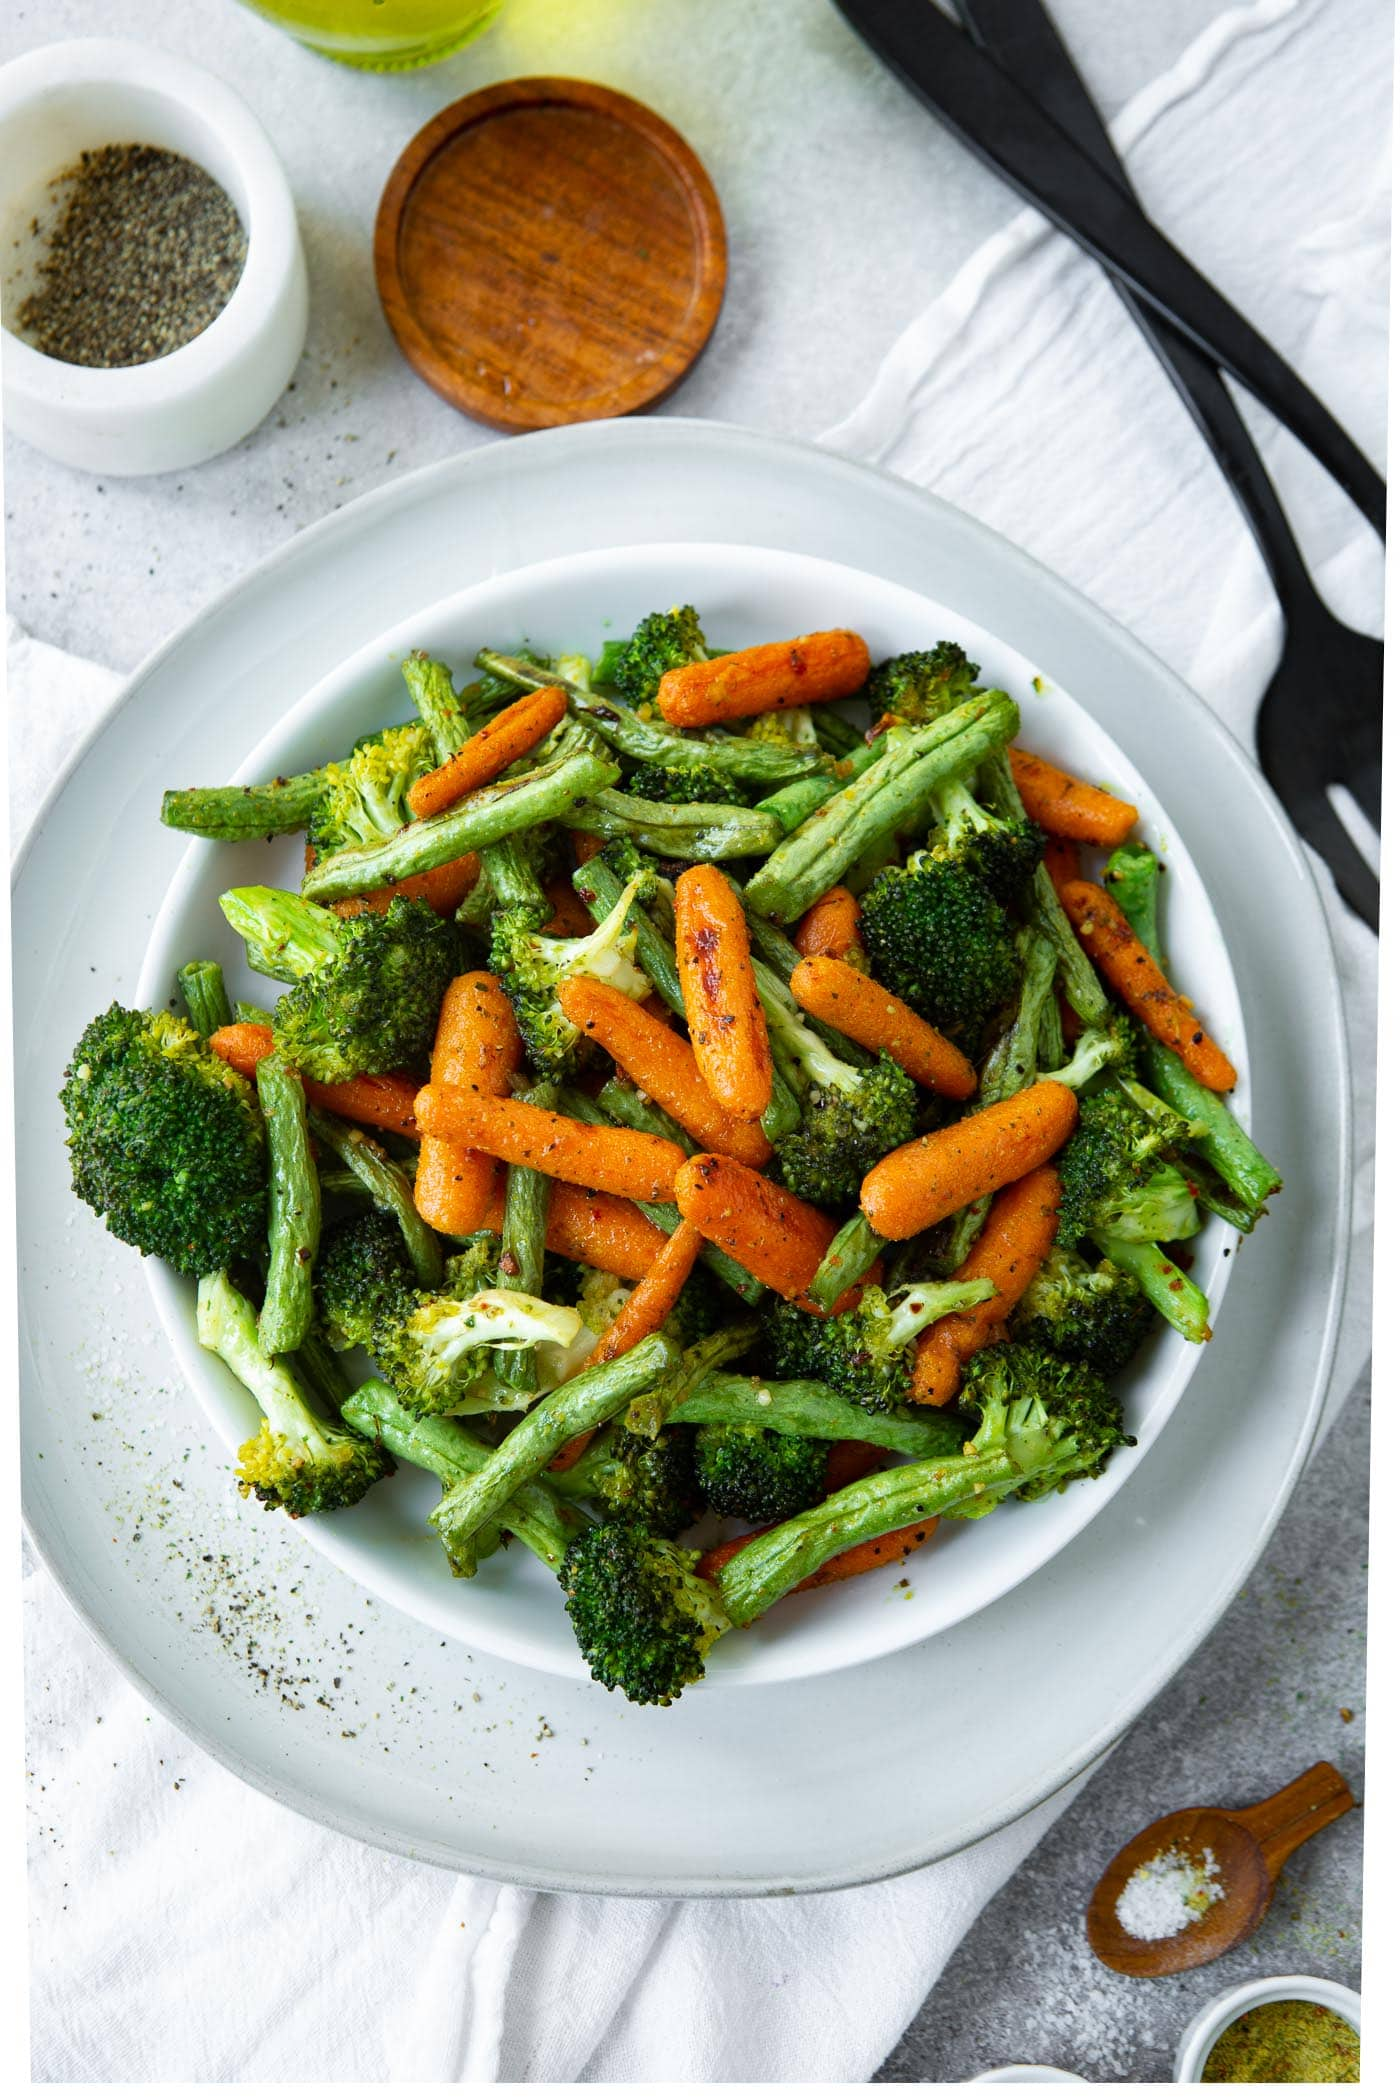 a photo of roasted baby carrots, green beans and broccoli in a white serving bowl on a white table cloth.